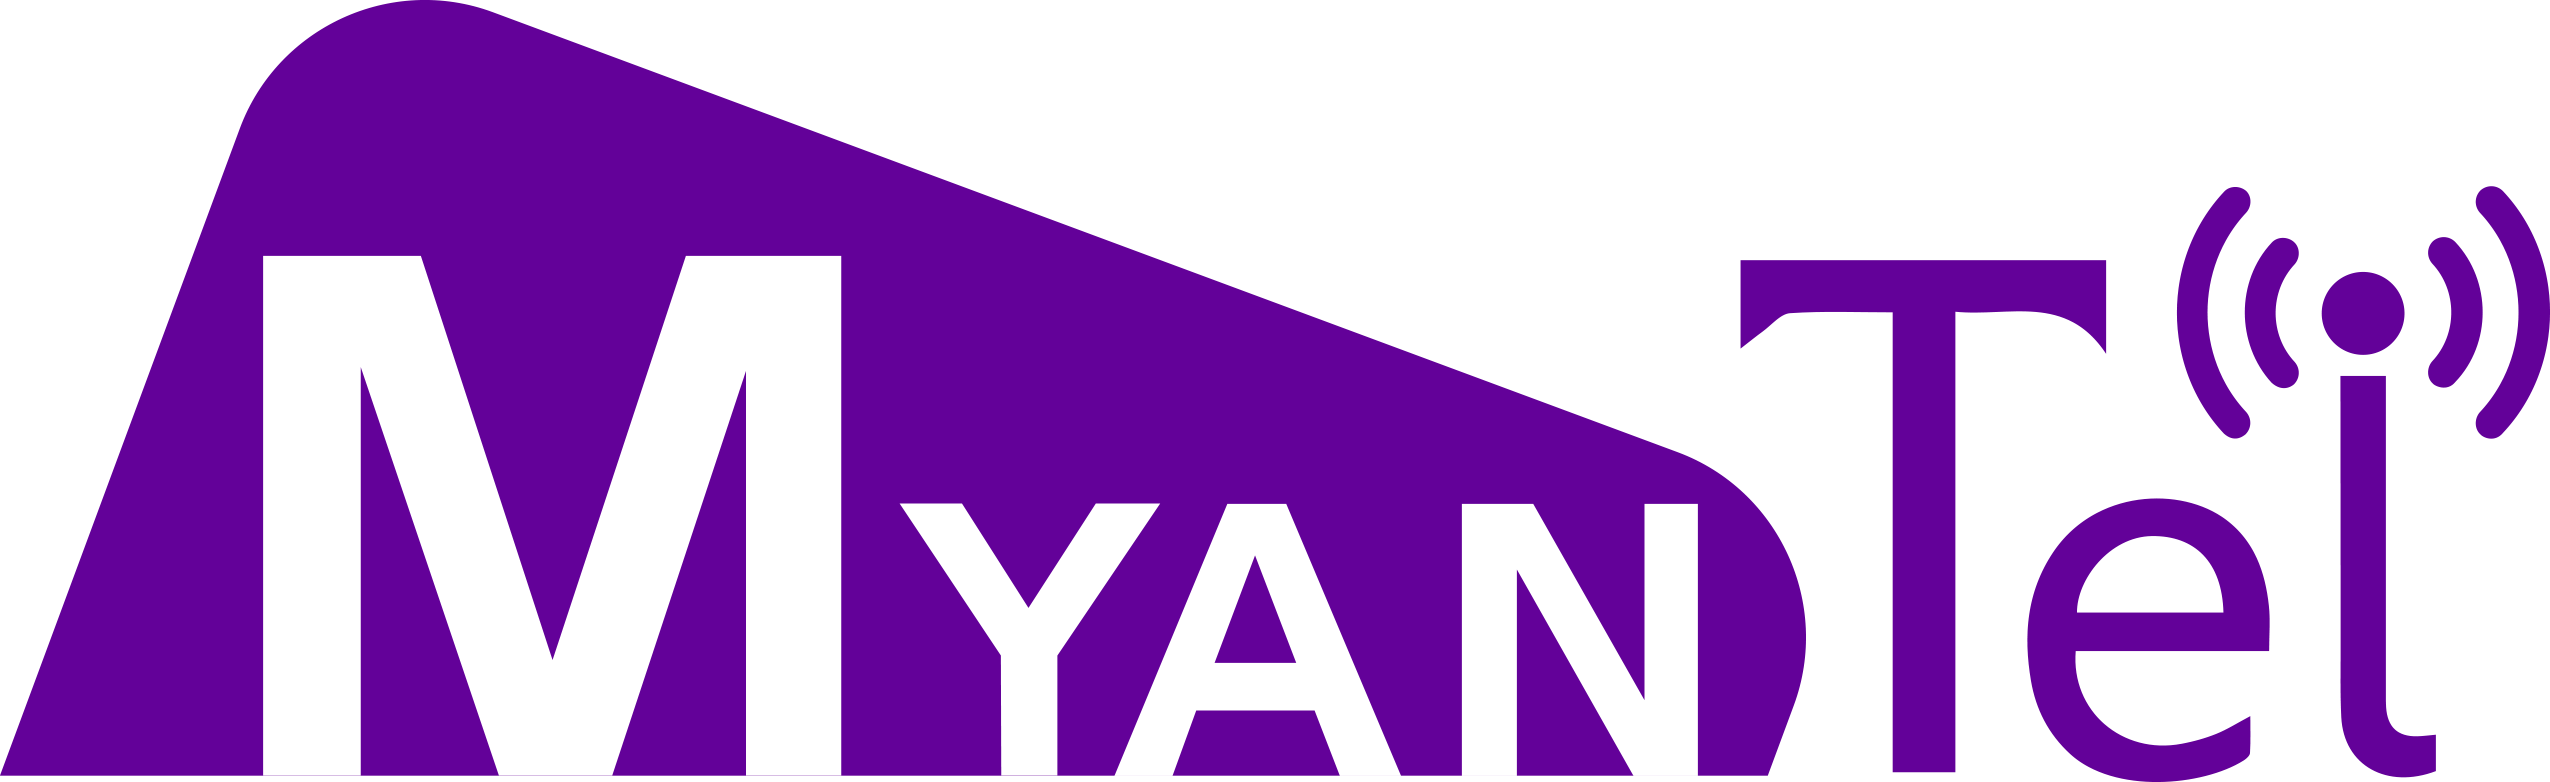 Myantel Holdings Limited and Myanmar Telemedia Holdings Limited